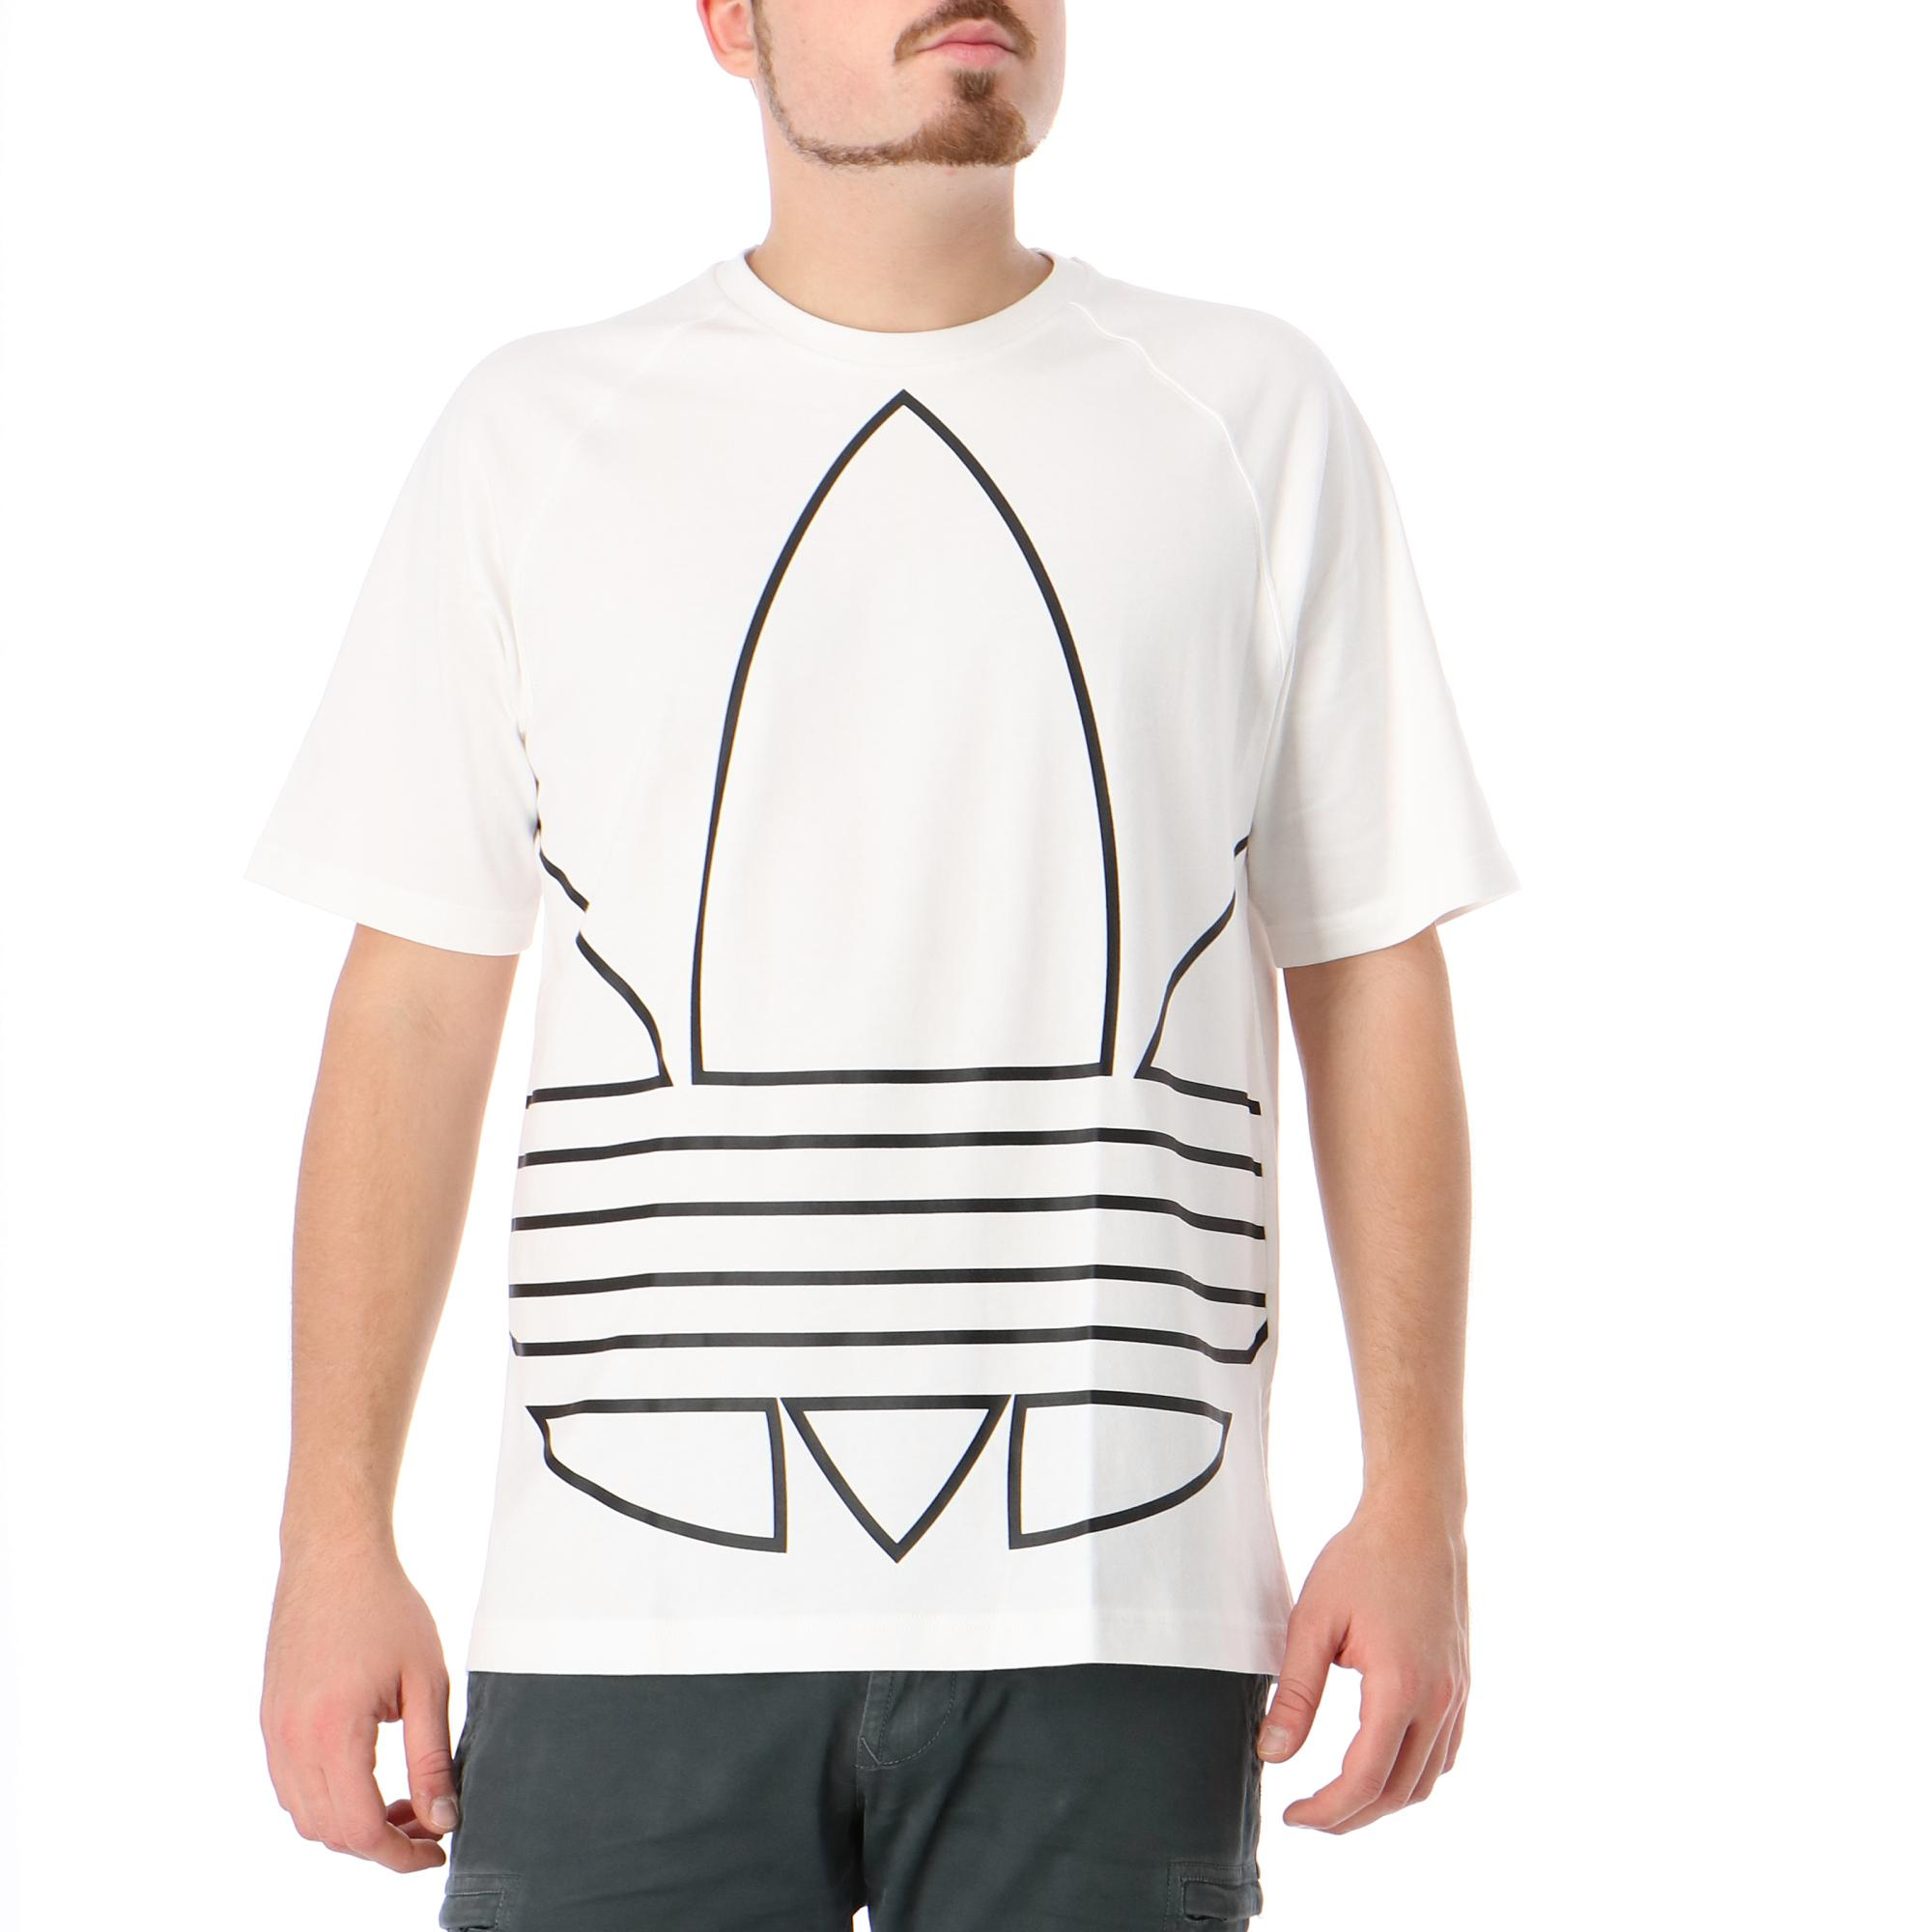 Adidas Bg Trf Out Tee White black